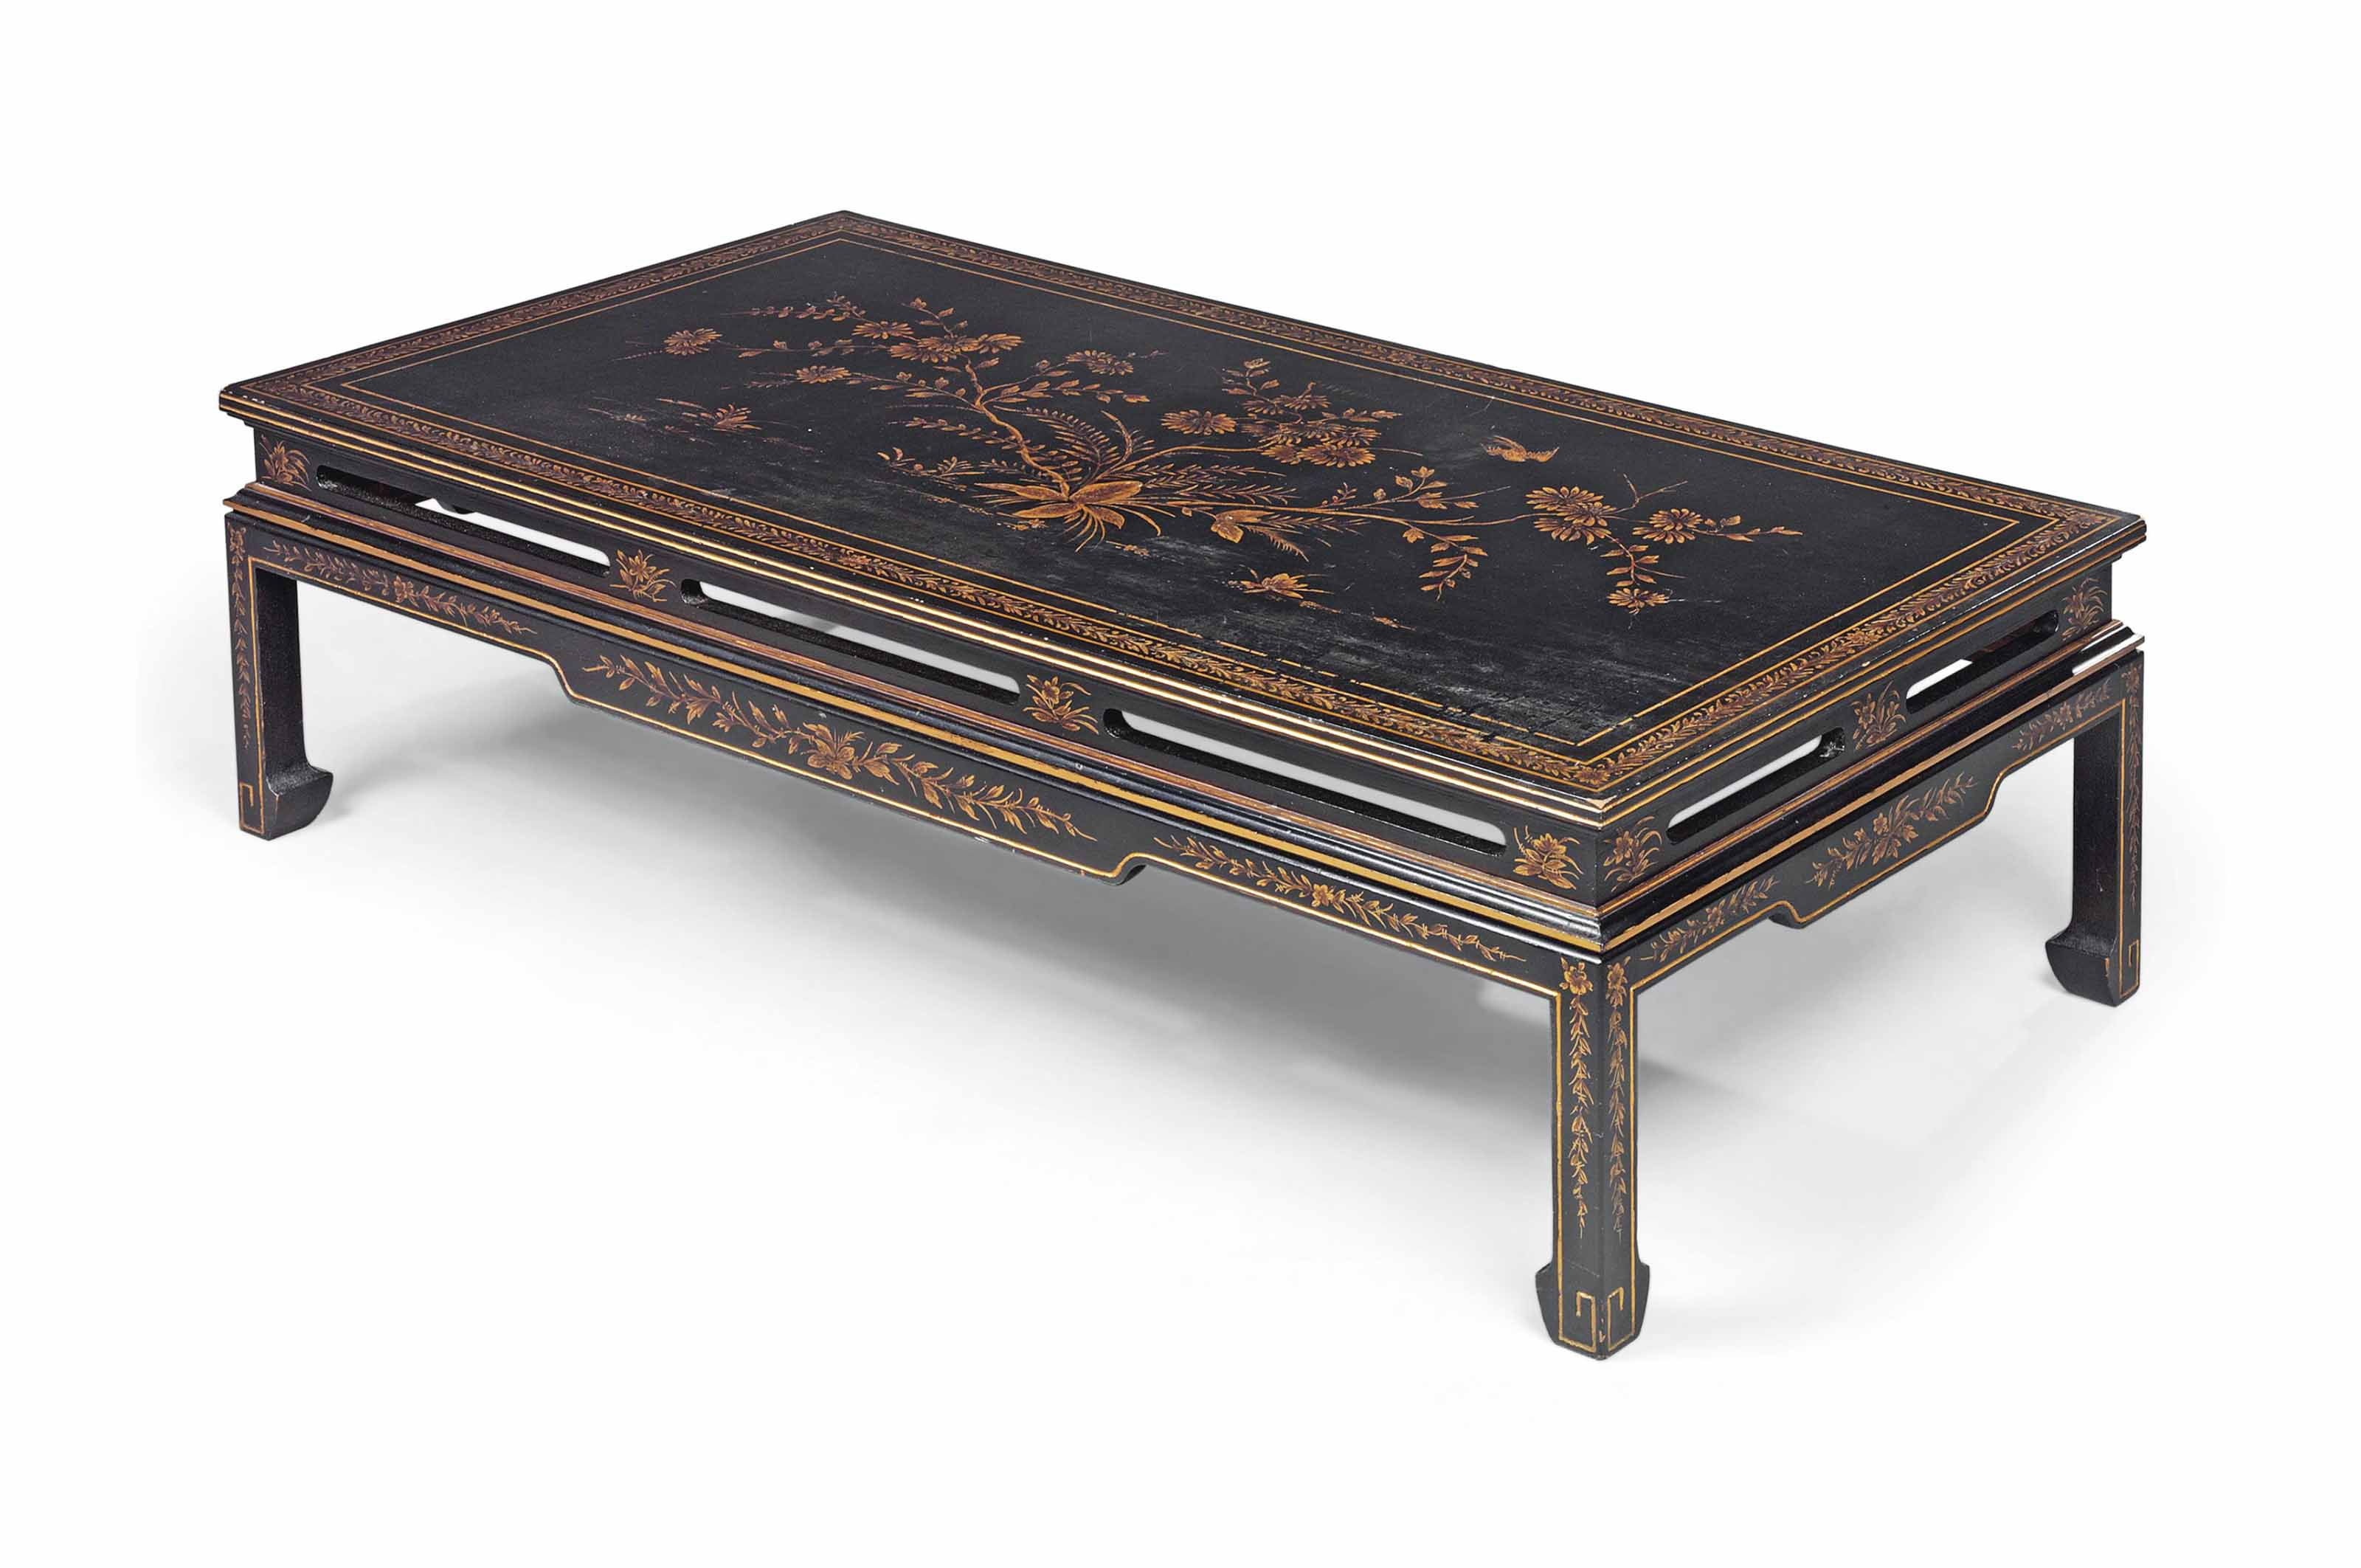 A BLACK AND GILT-JAPANNED LOW